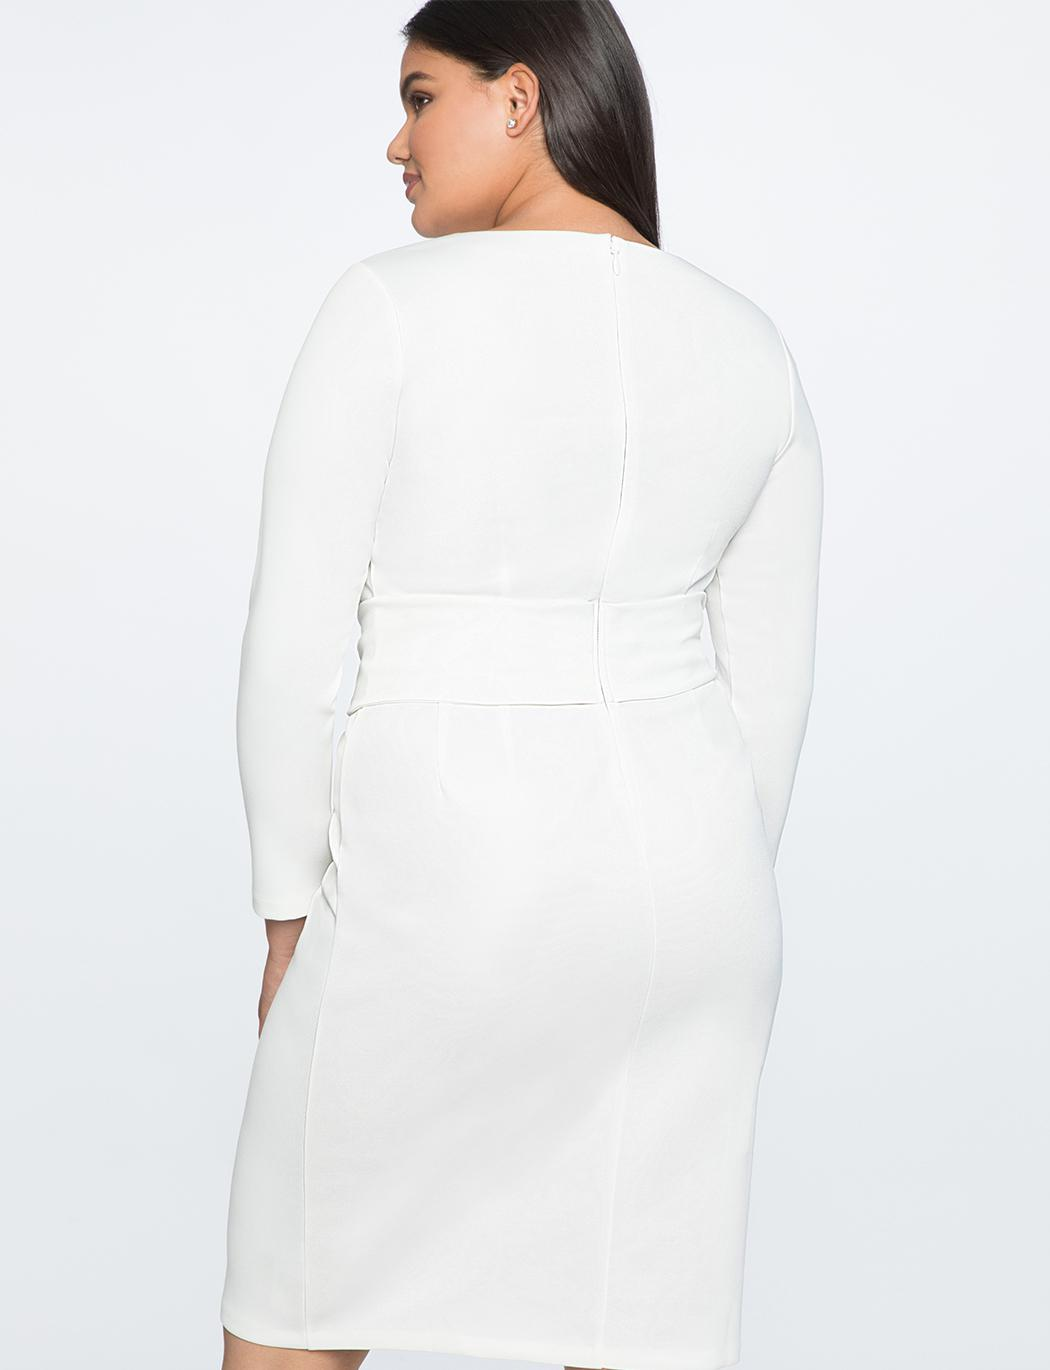 ddc1f88a644 Lyst - Eloquii Long Sleeve Scuba Dress With Tie in White